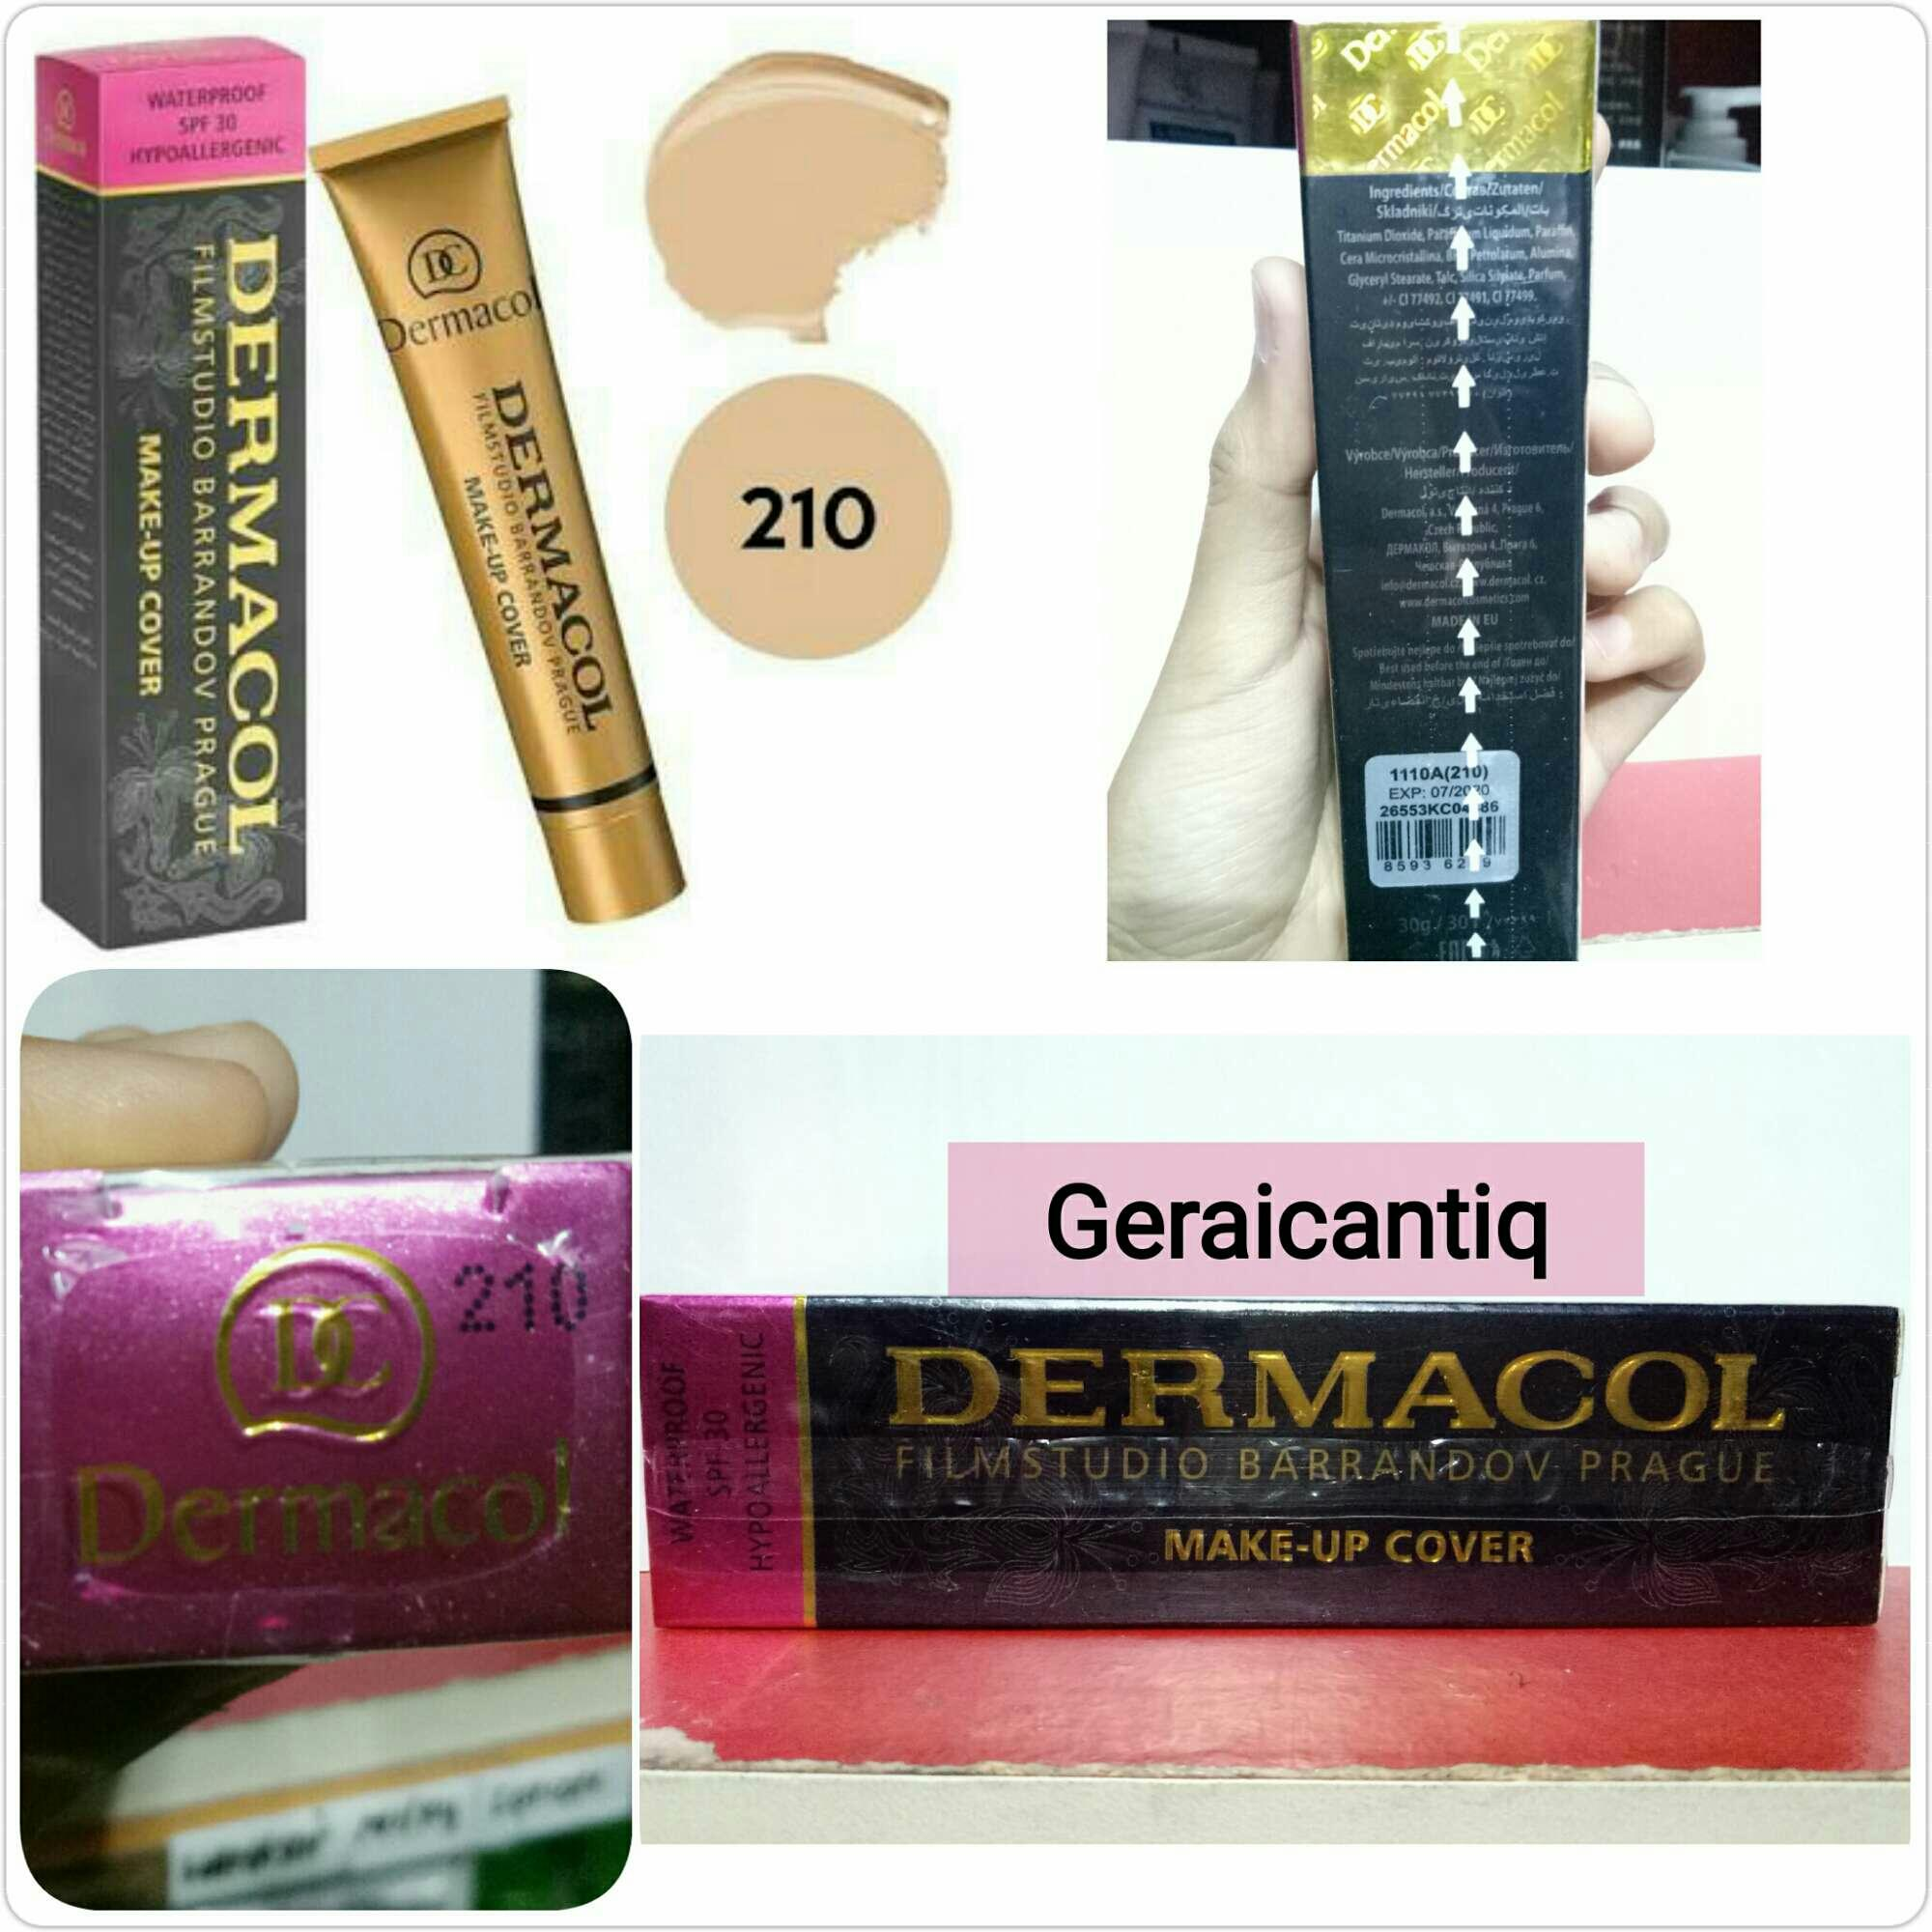 Dermacol Make Up Cover Foundation Spf 30 210 Produk Terbaik Wiki Harga Original 30g Hypoallergenic Concealer Rias Pengantin Natural Waterproff Coverage Makeup